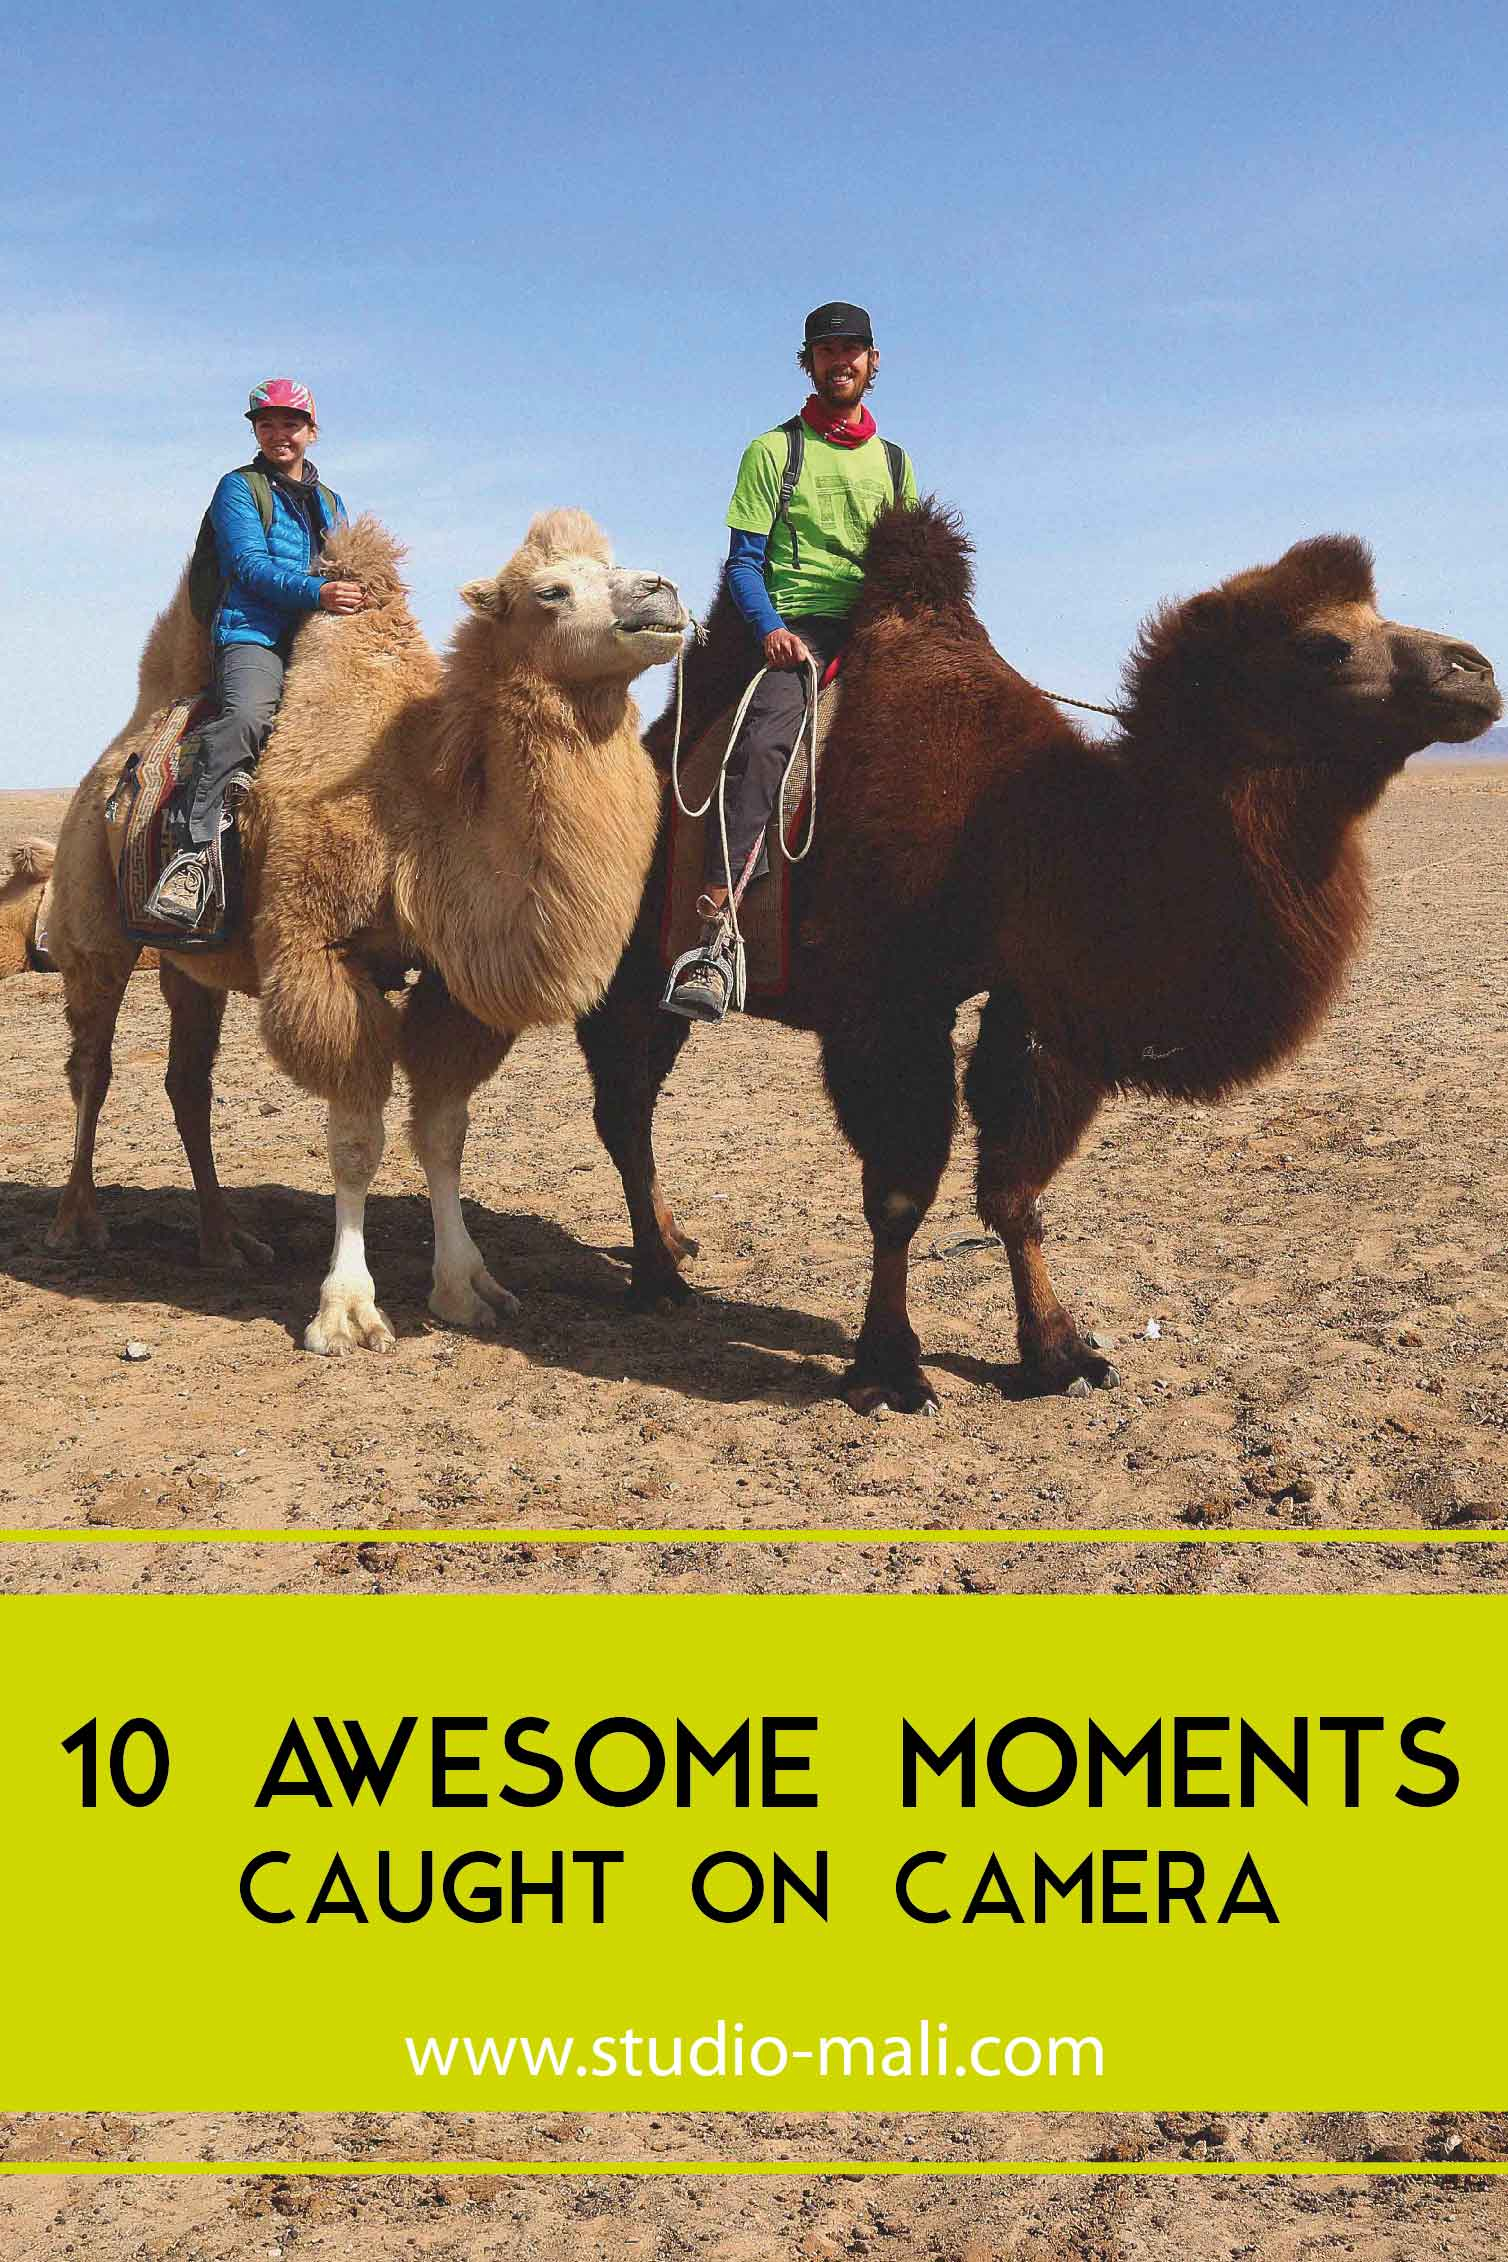 10 Awesome Moments Caught On Camera, by Studio Mali.jpg